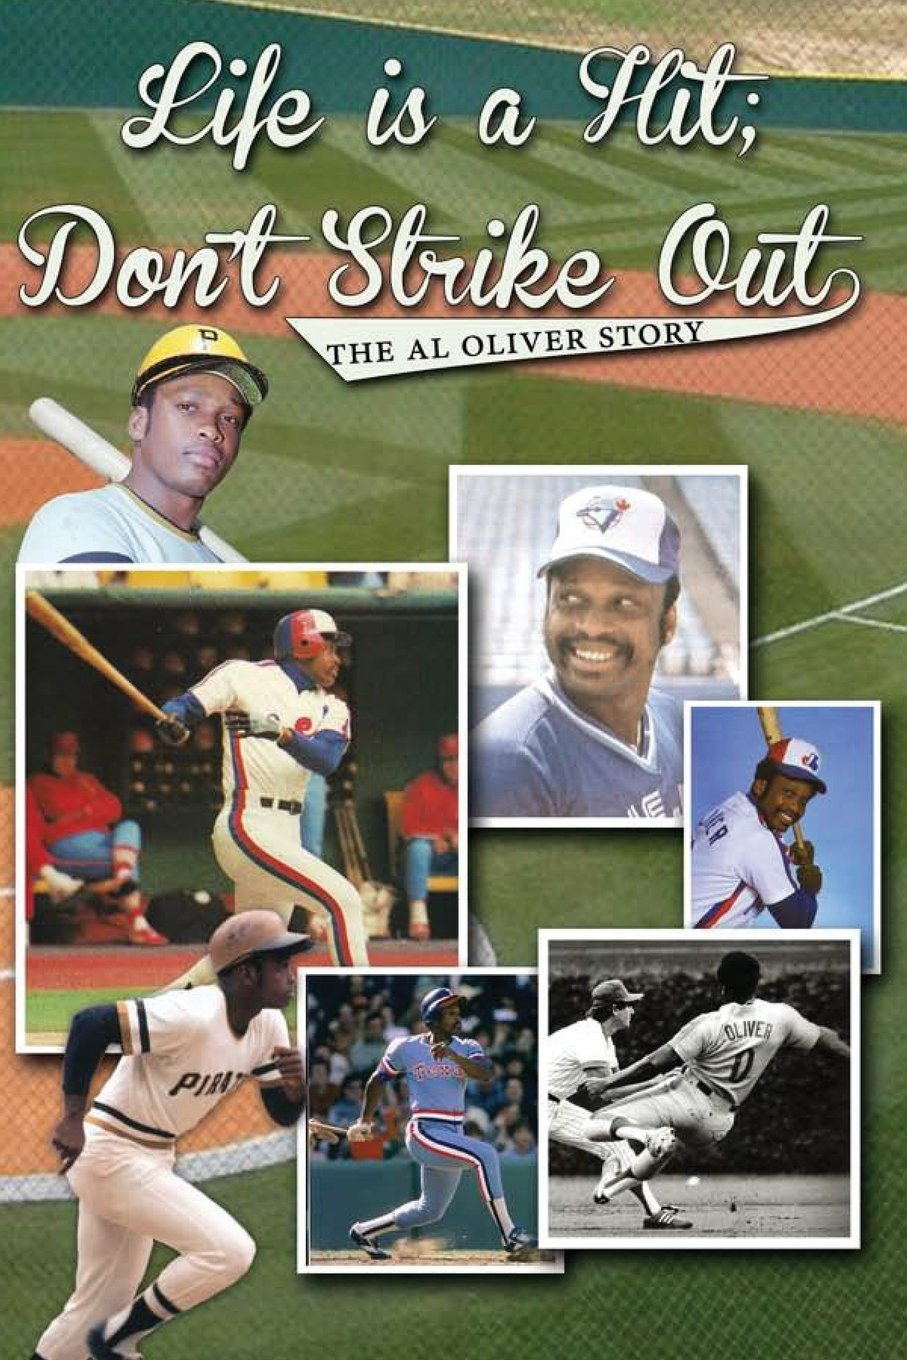 Life Is a Hit; Don't Strike Out